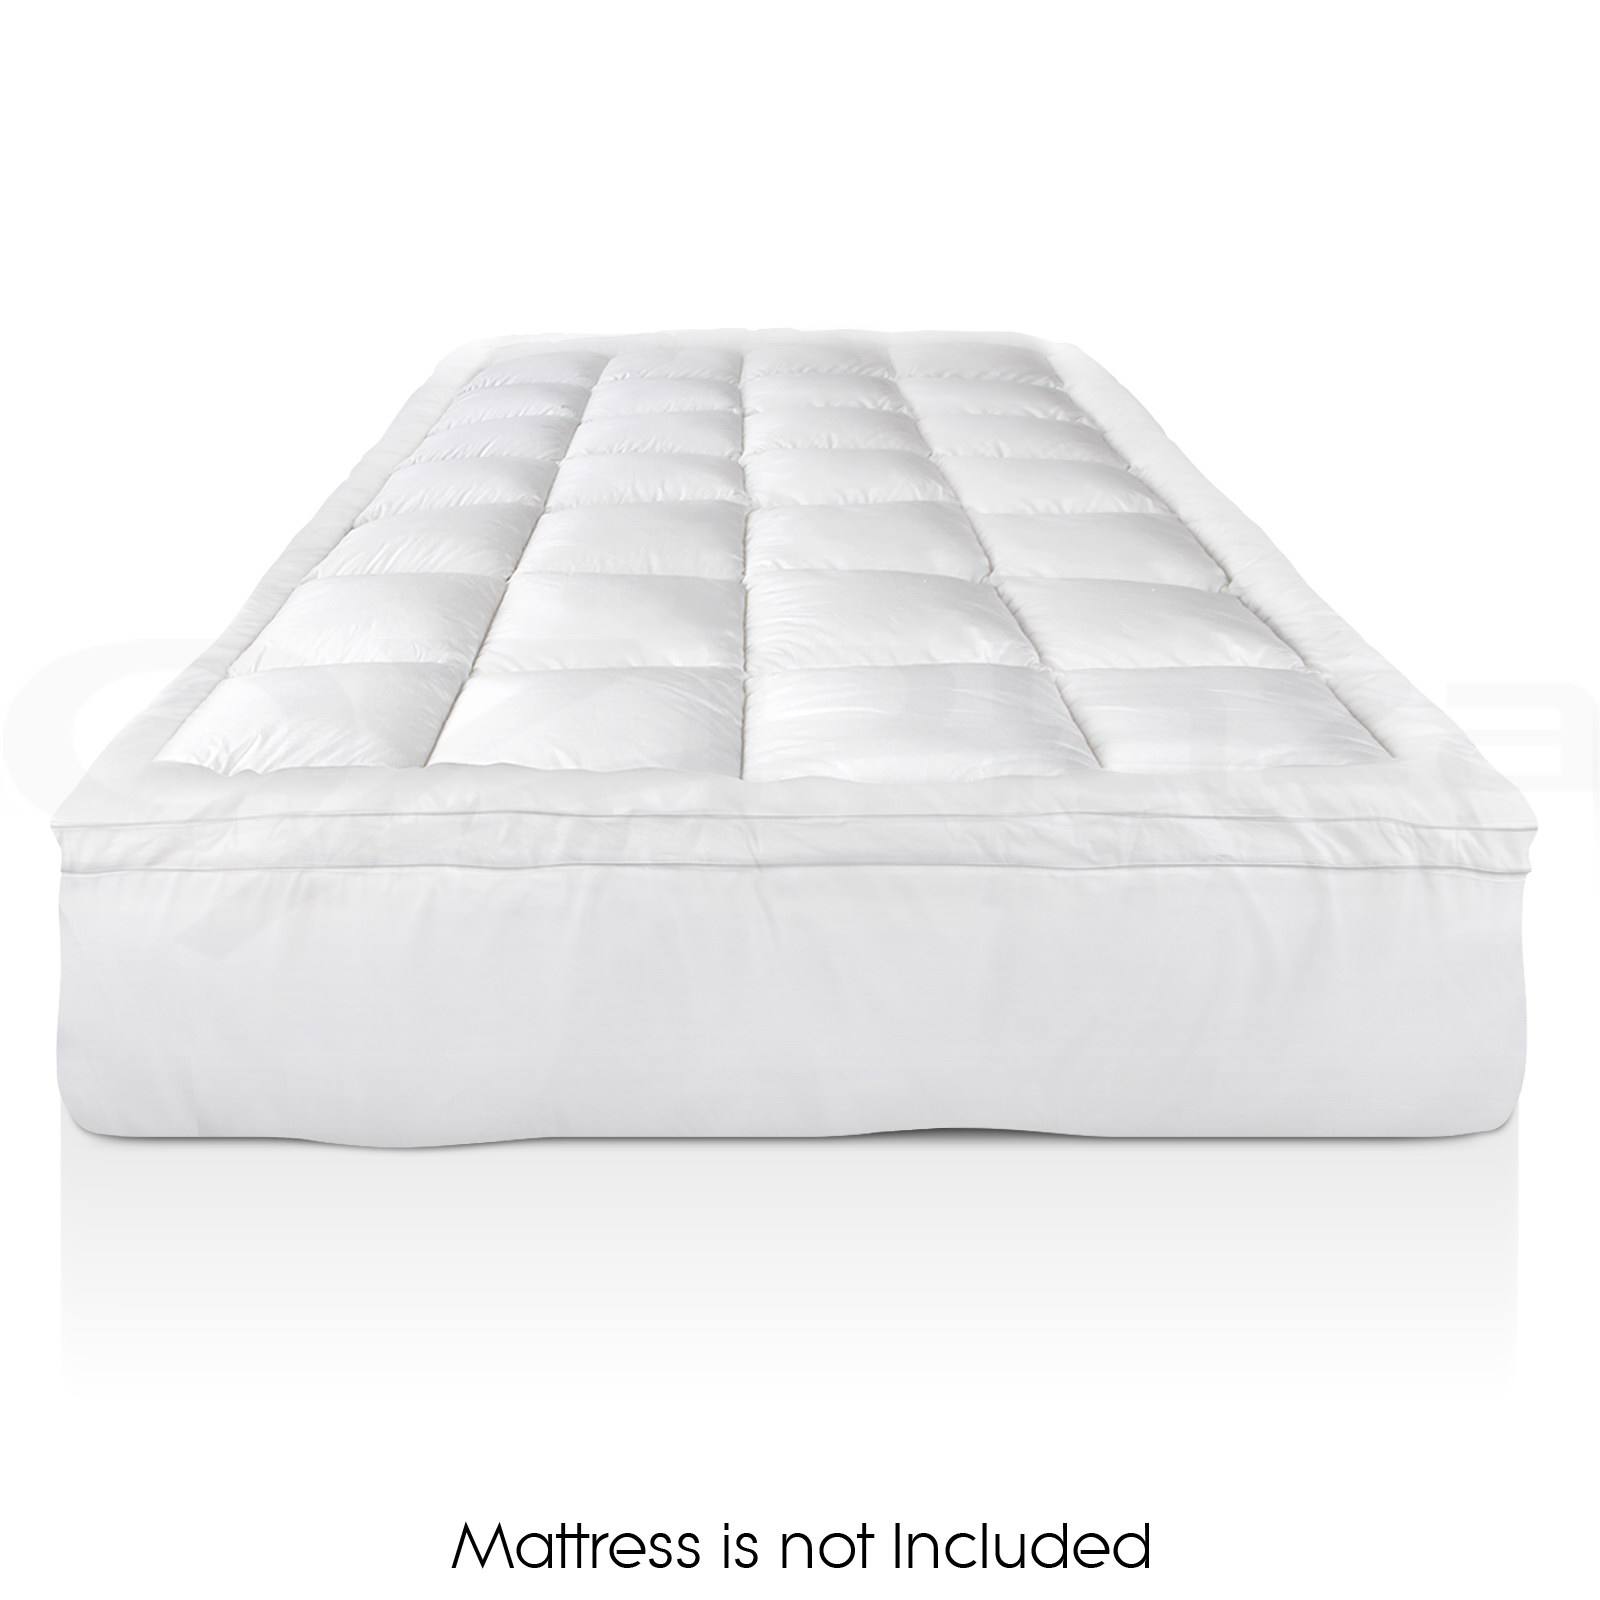 Luxury Pillowtop Mattress Topper Memory Resistant Protect Cover KING SINGLE.  Picture 1 of 12; Picture 2 of 12 ...